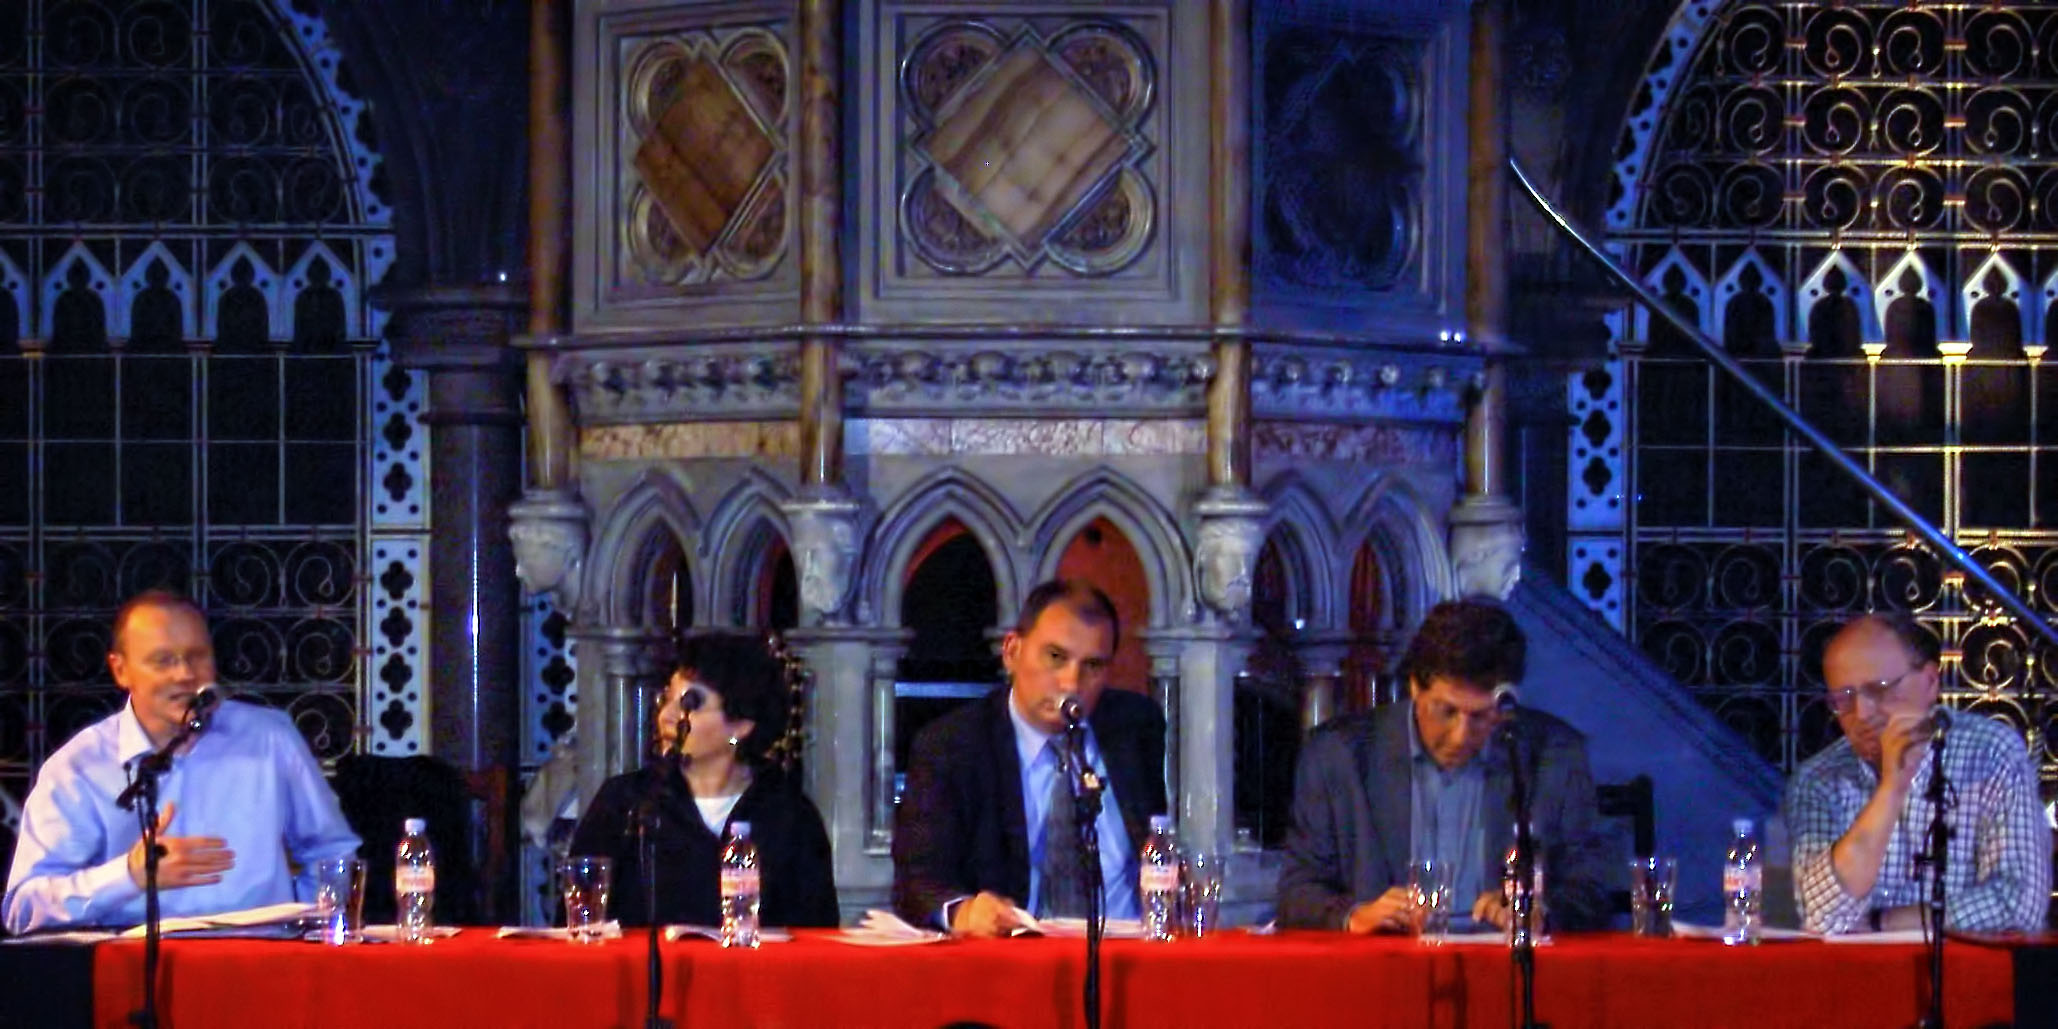 Alan Johnson, Eve Garrard, Nick Cohen, Shalom Lappin and Norman Geras signing the Euston Manifesto. Photo: fys / Wikimedia